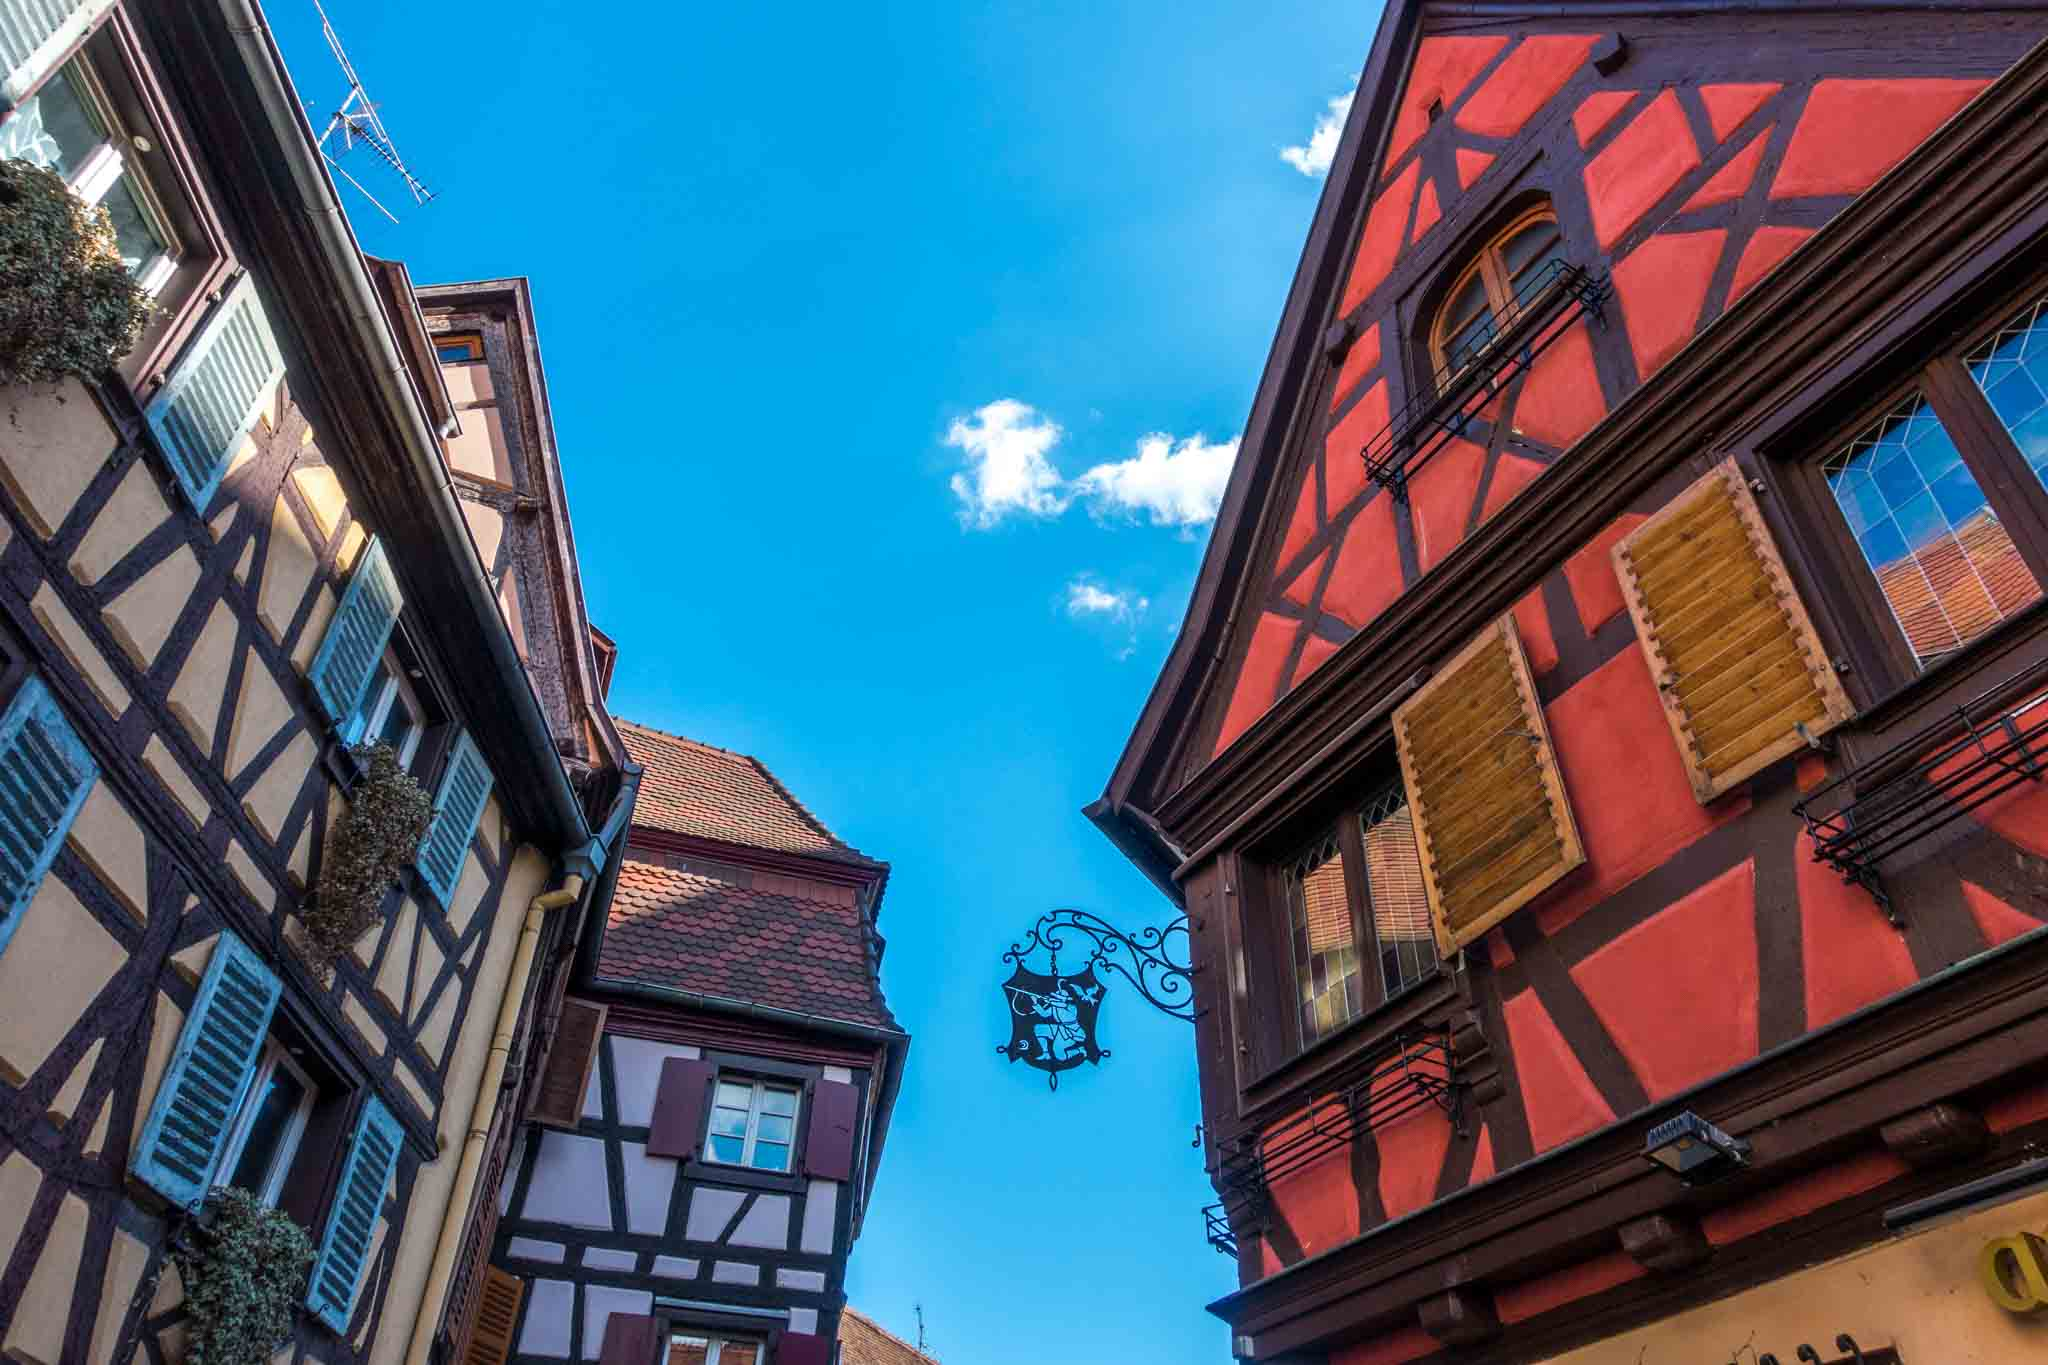 Just wandering through the city is one of the best things to do in Colmar France